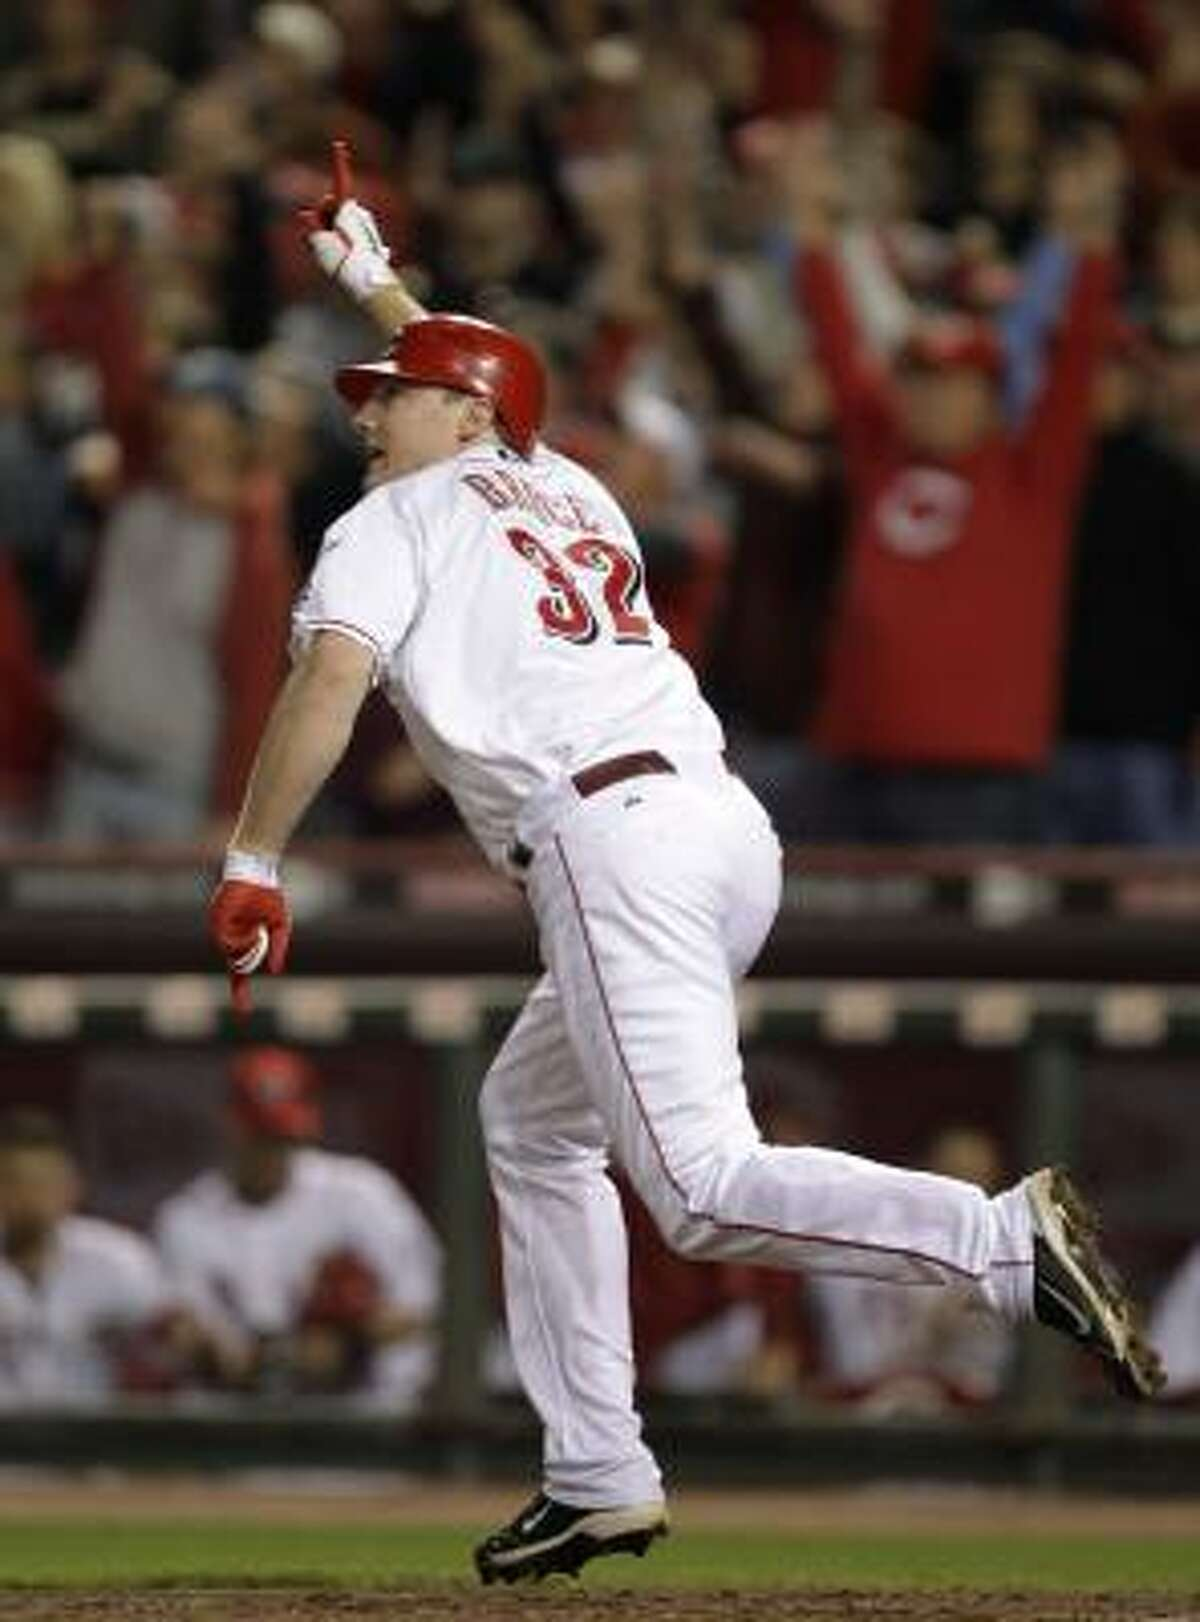 The Reds' Jay Bruce reacts after hitting a home run off Astros relief pitcher Tim Byrdak in the ninth inning.